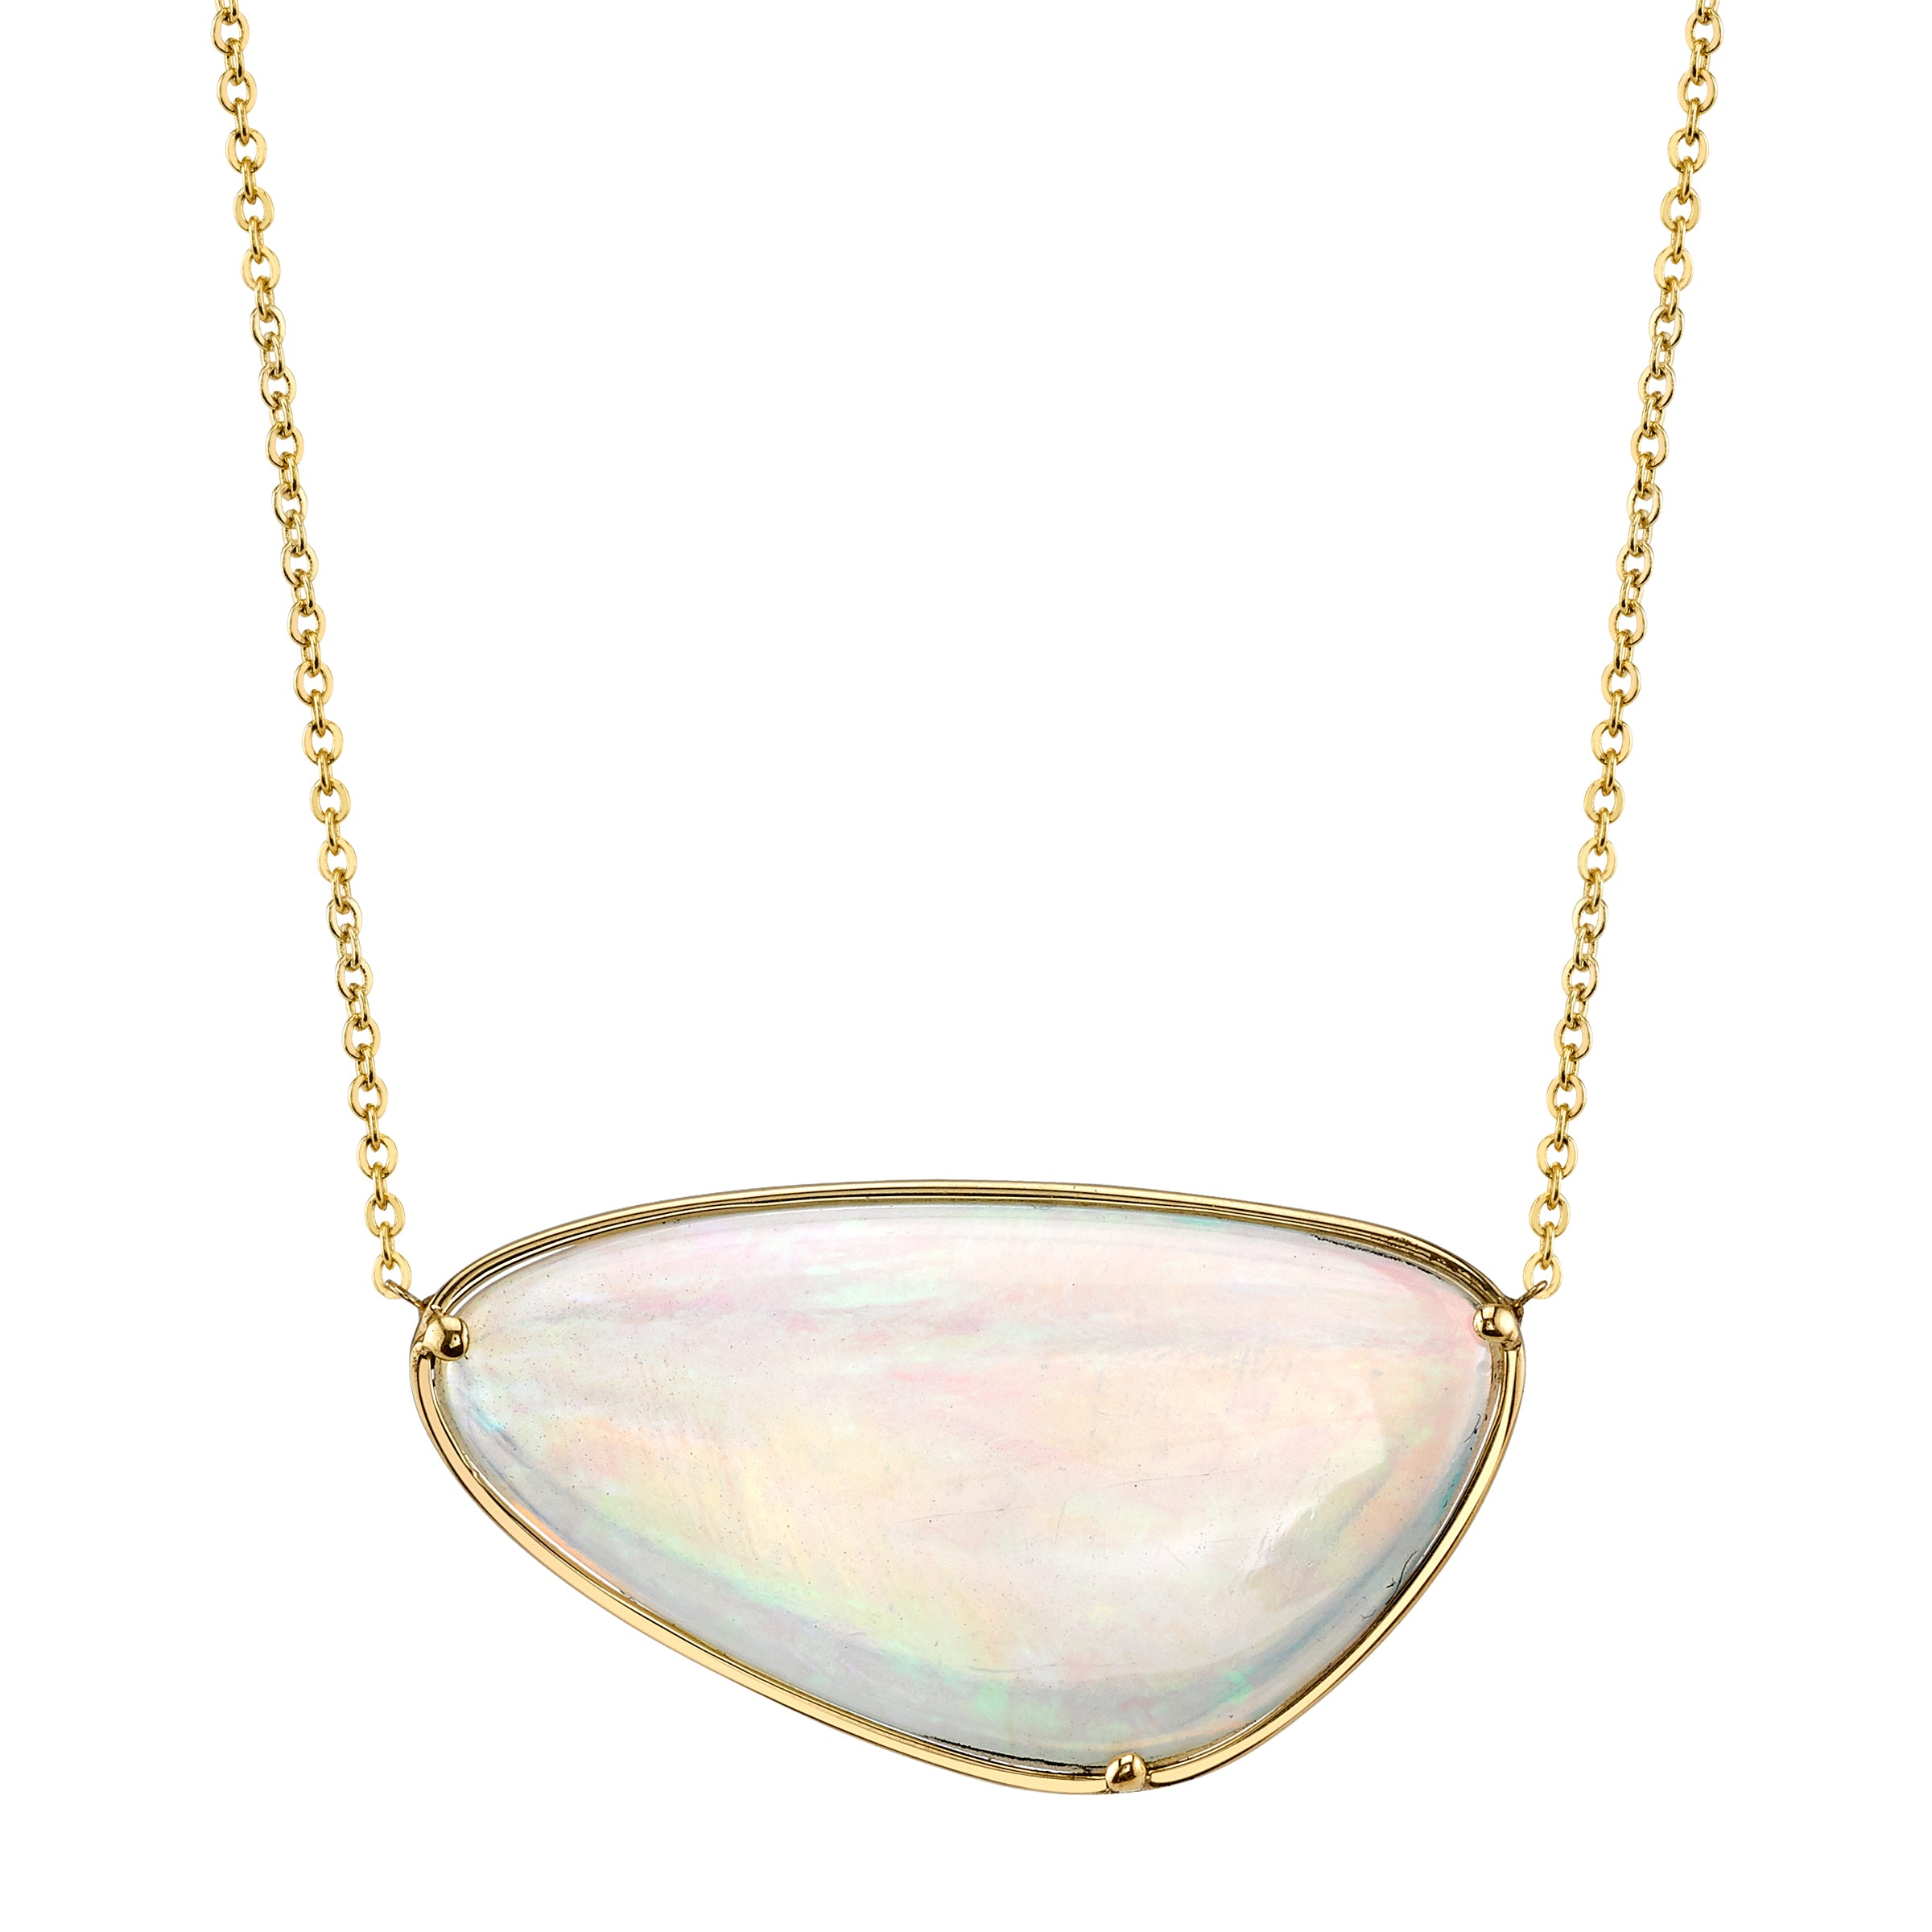 One of a Kind Opal Necklace in Yellow Gold